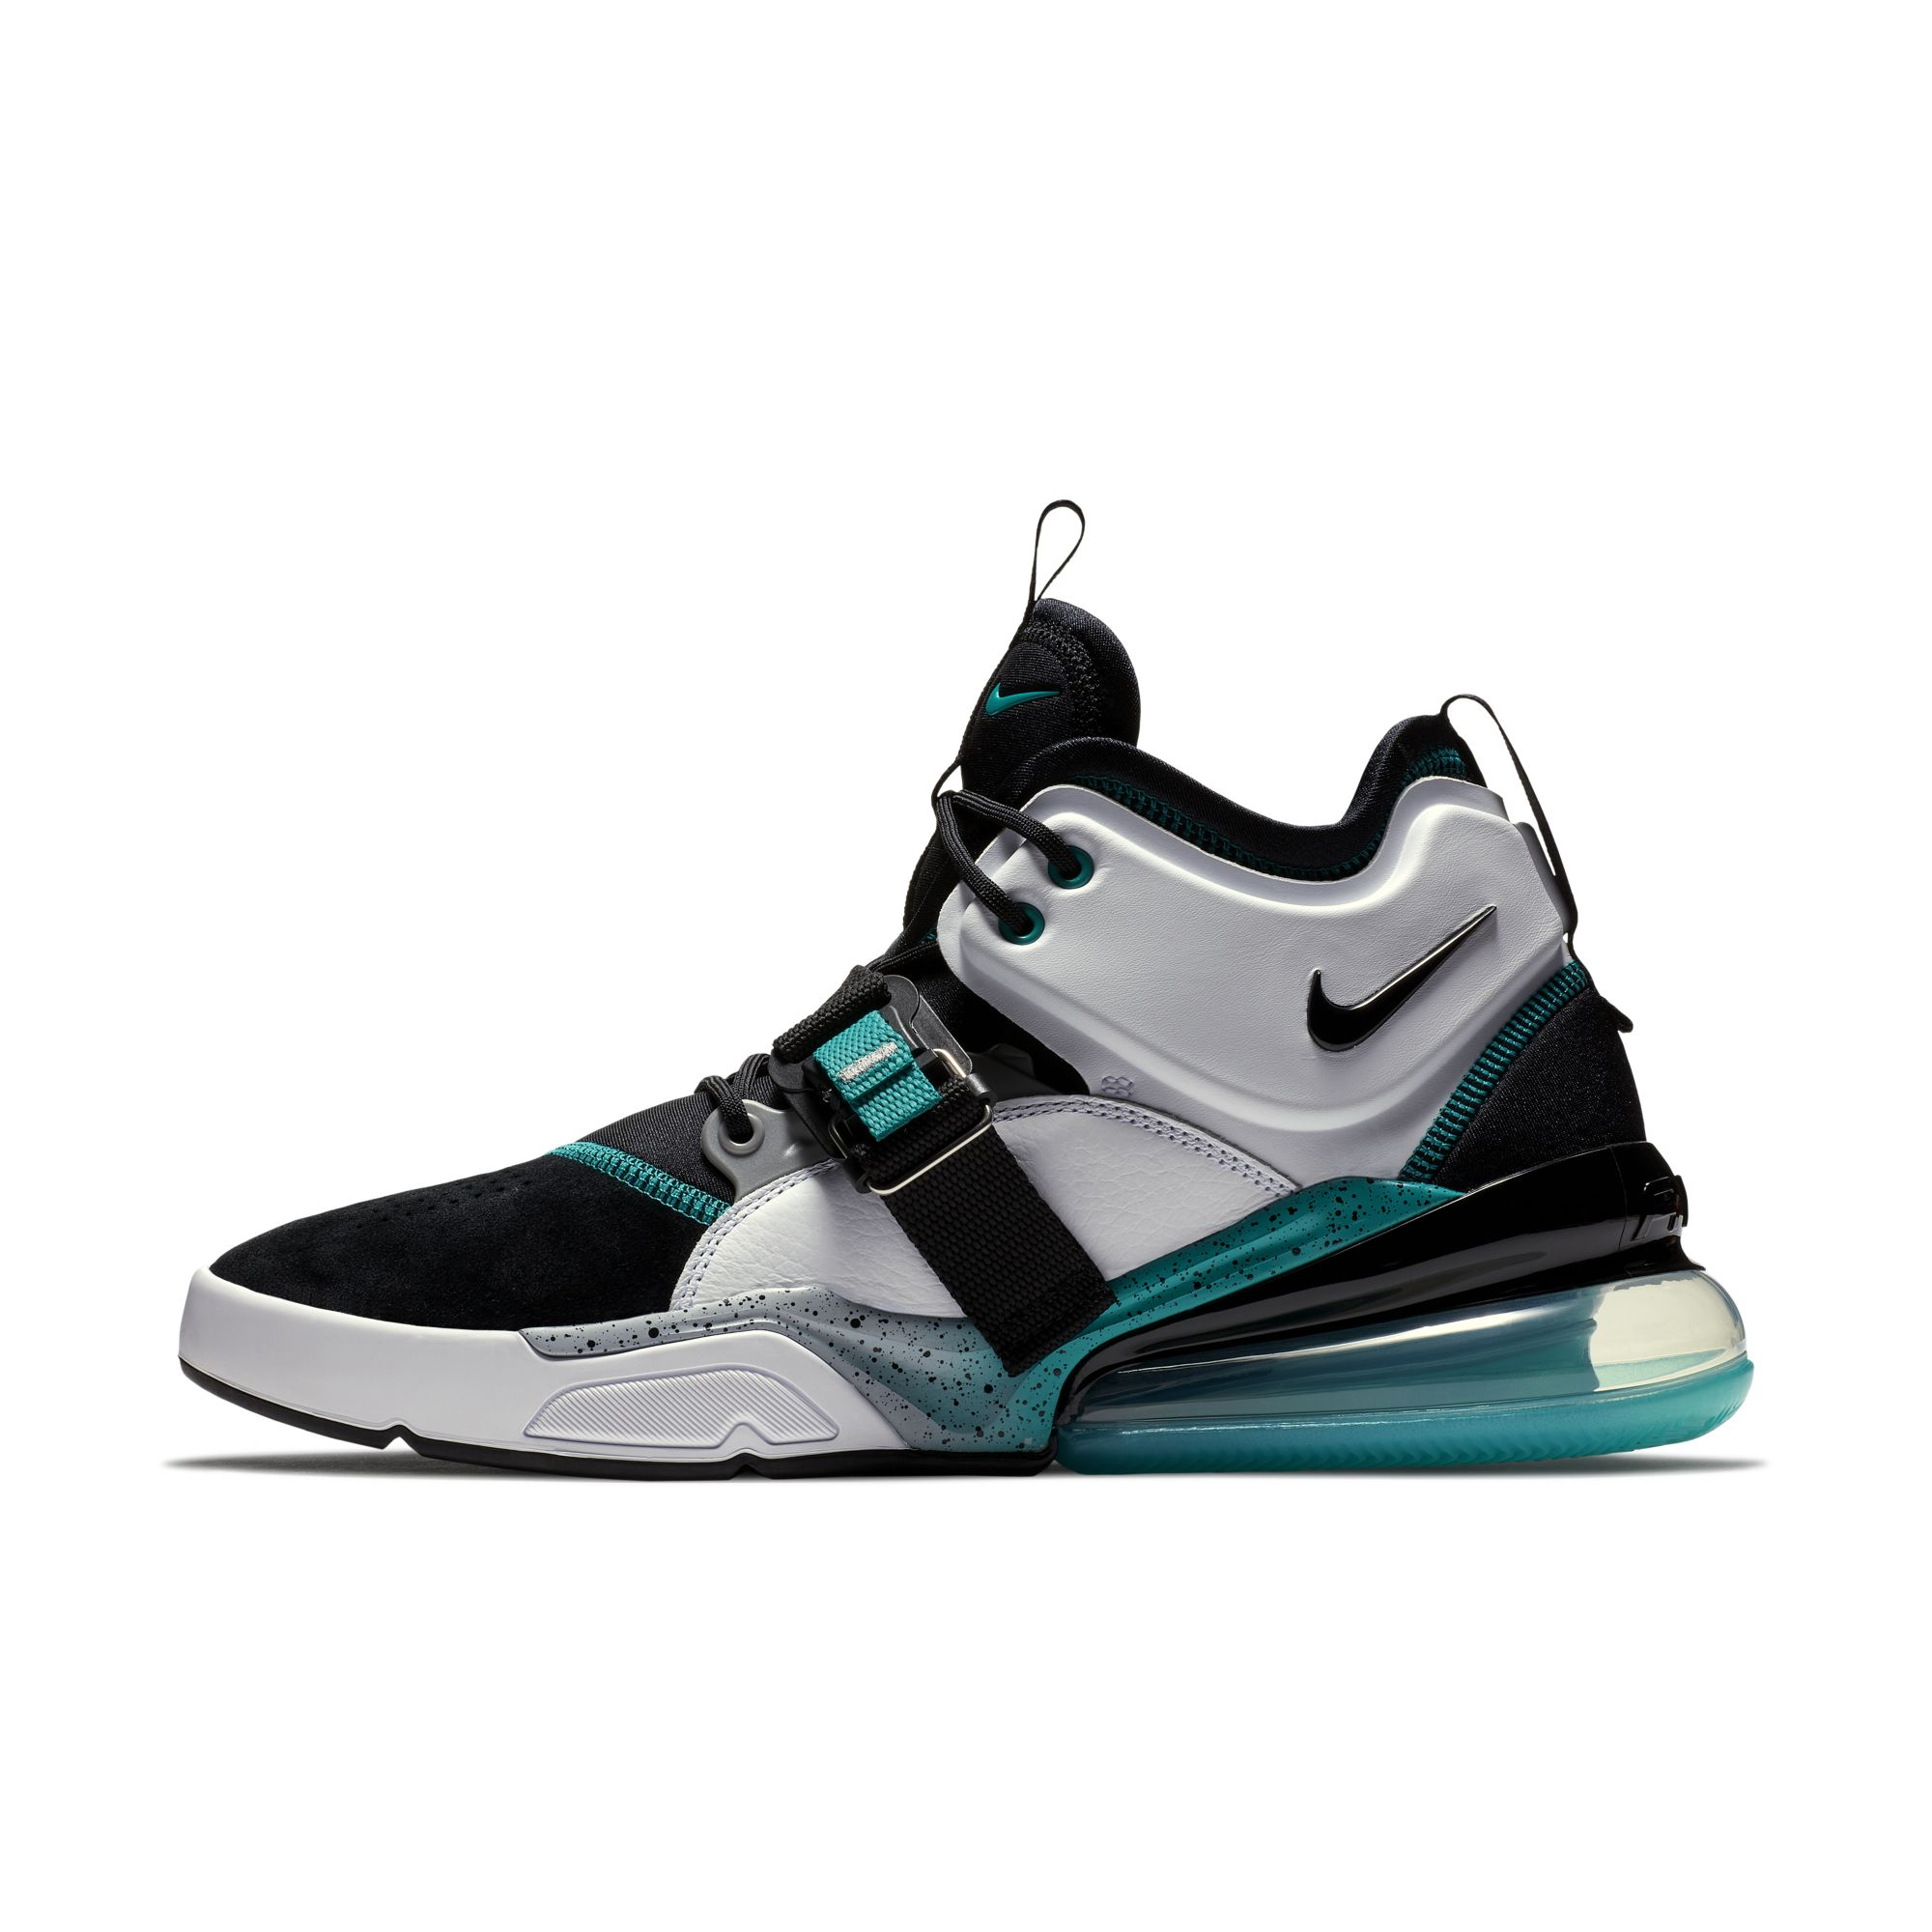 fad5649ebc09e0 This Upcoming Nike Air Force 270 Should Remind You of Something ...